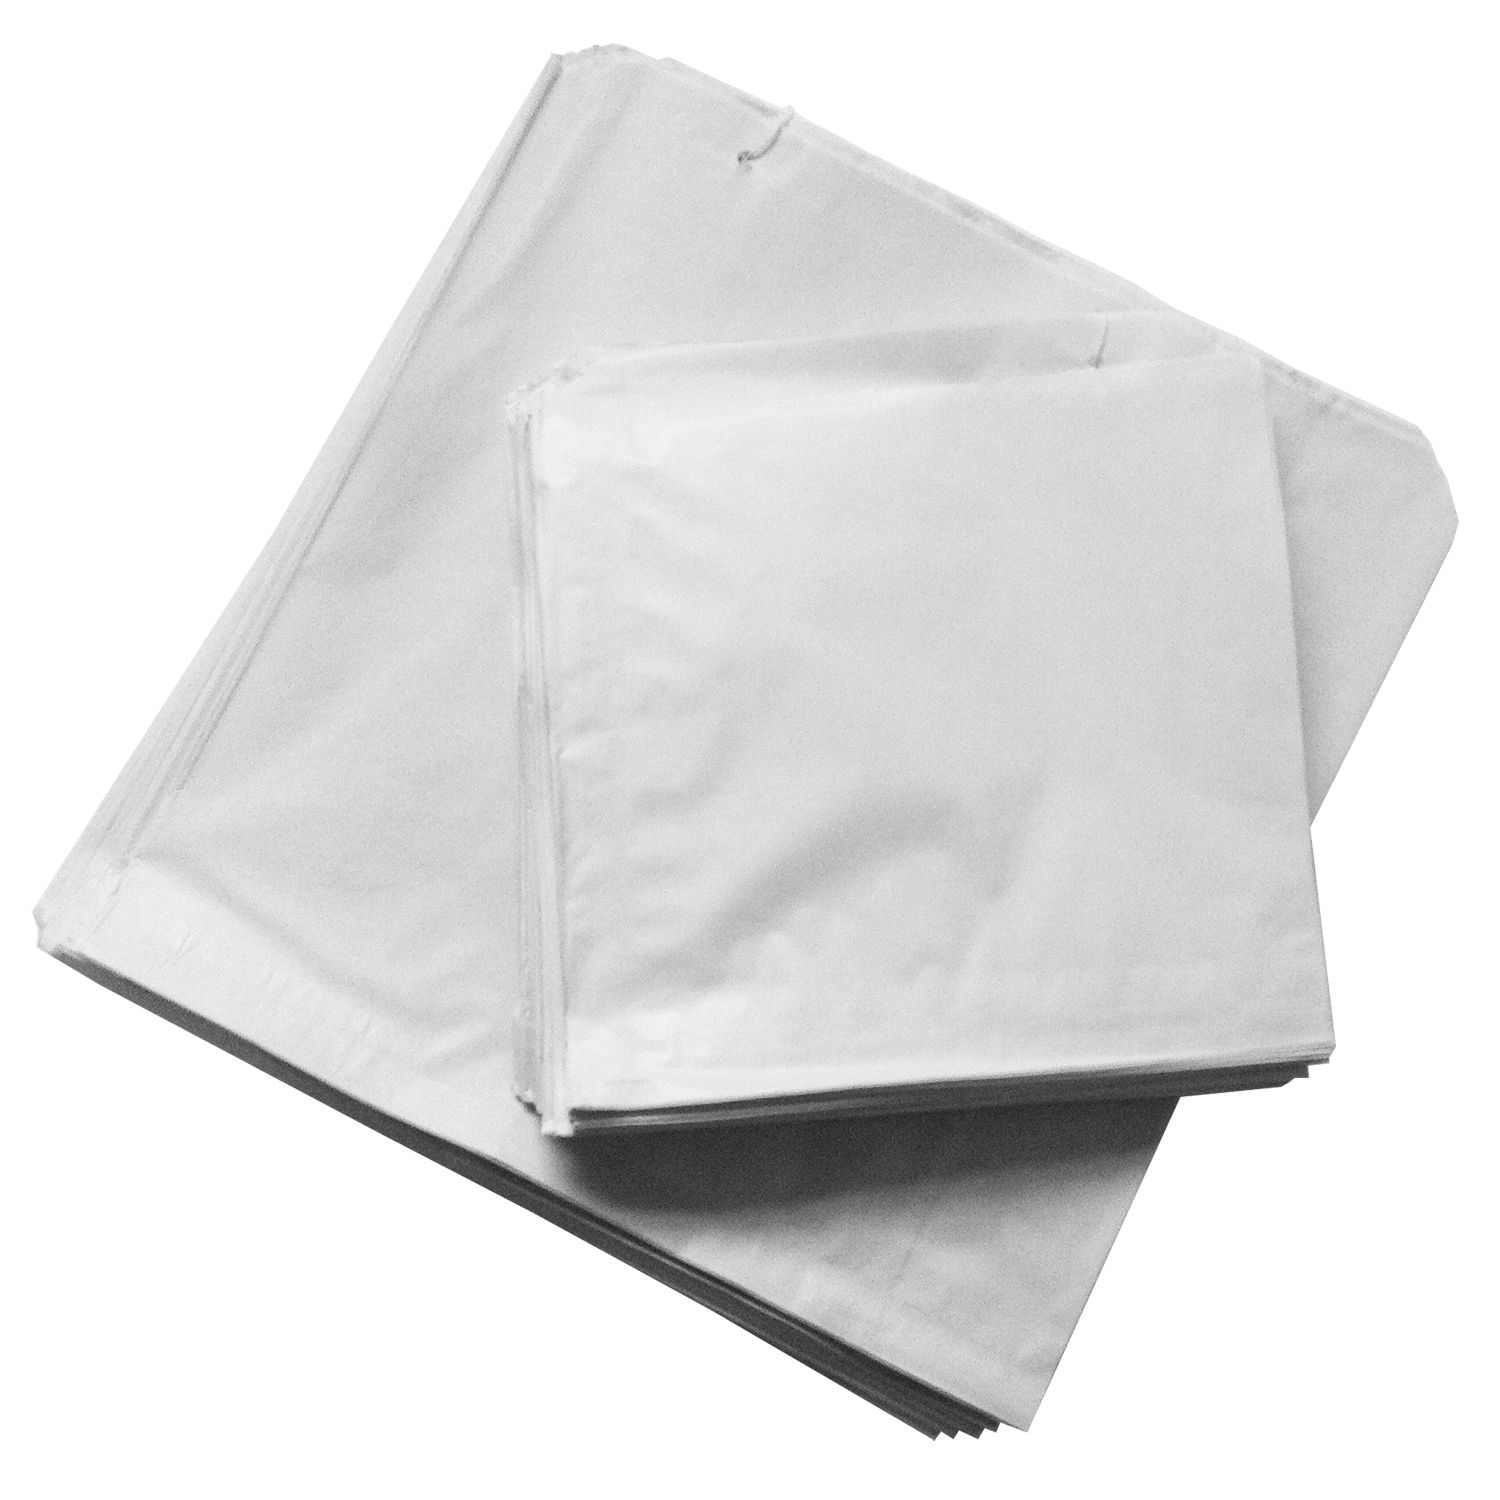 WHITE STRUNG PAPER BAGS